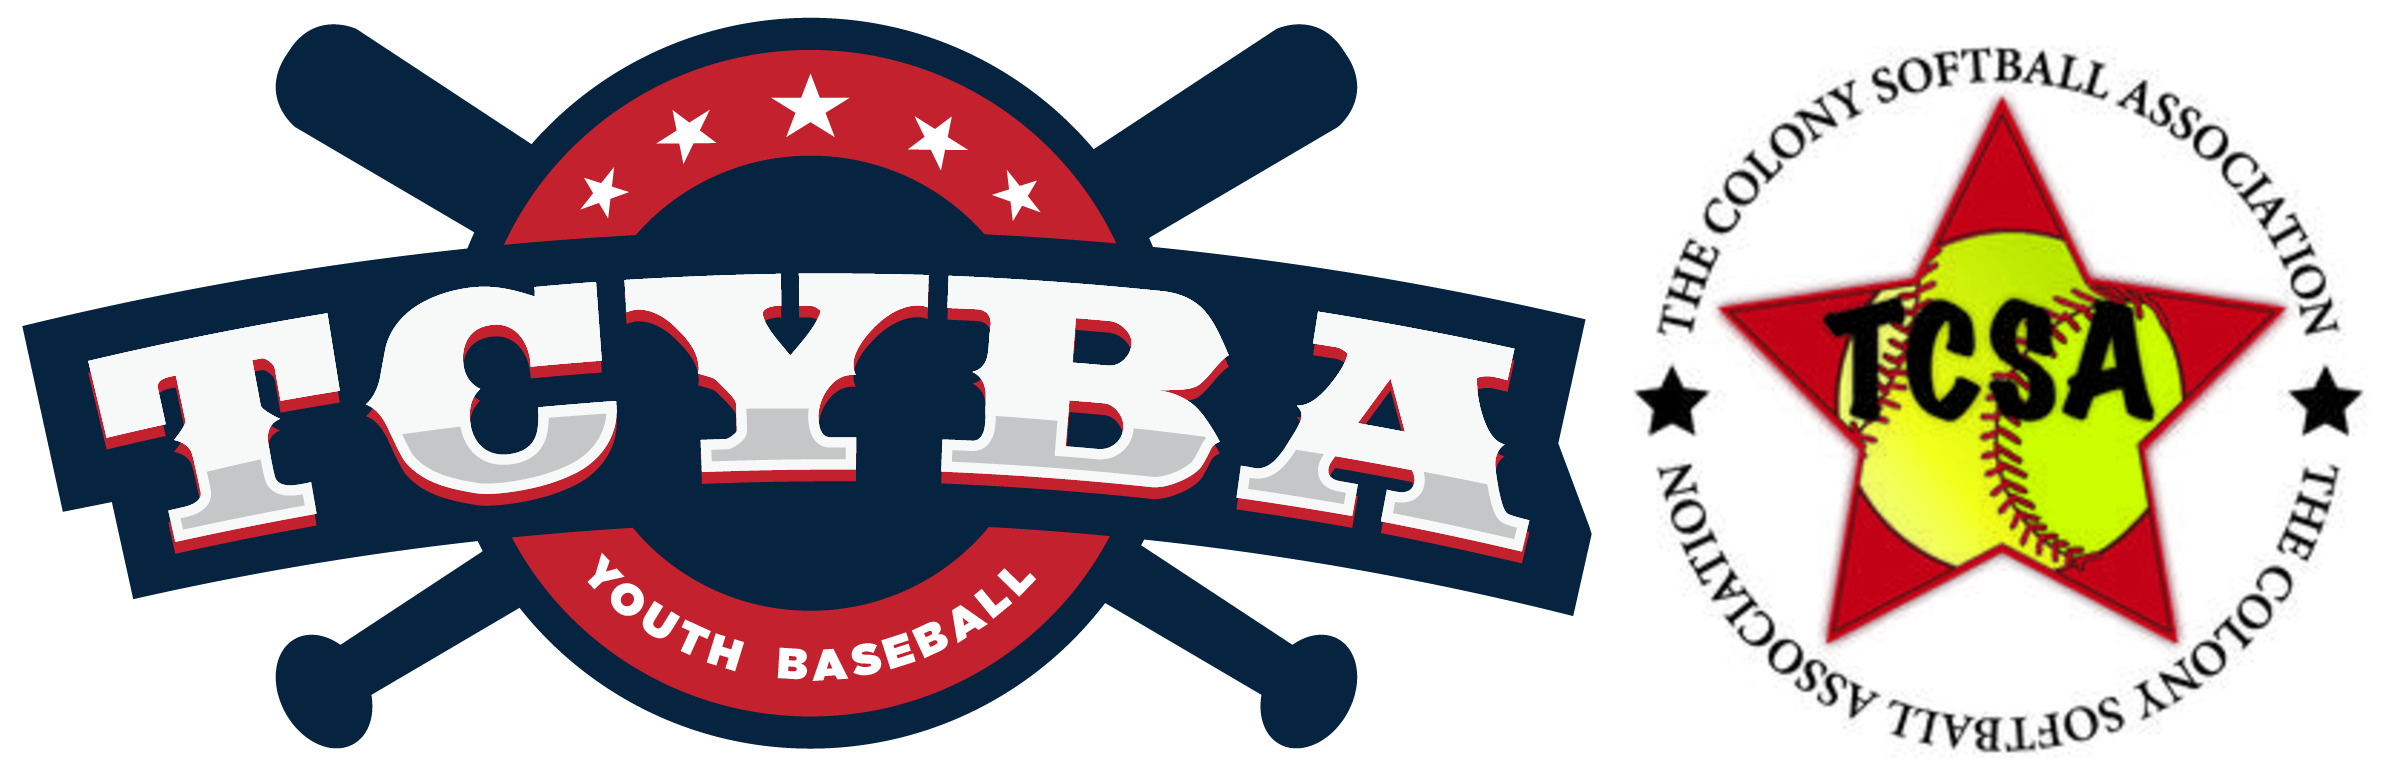 TCYBA-baseball-and-softball-logos